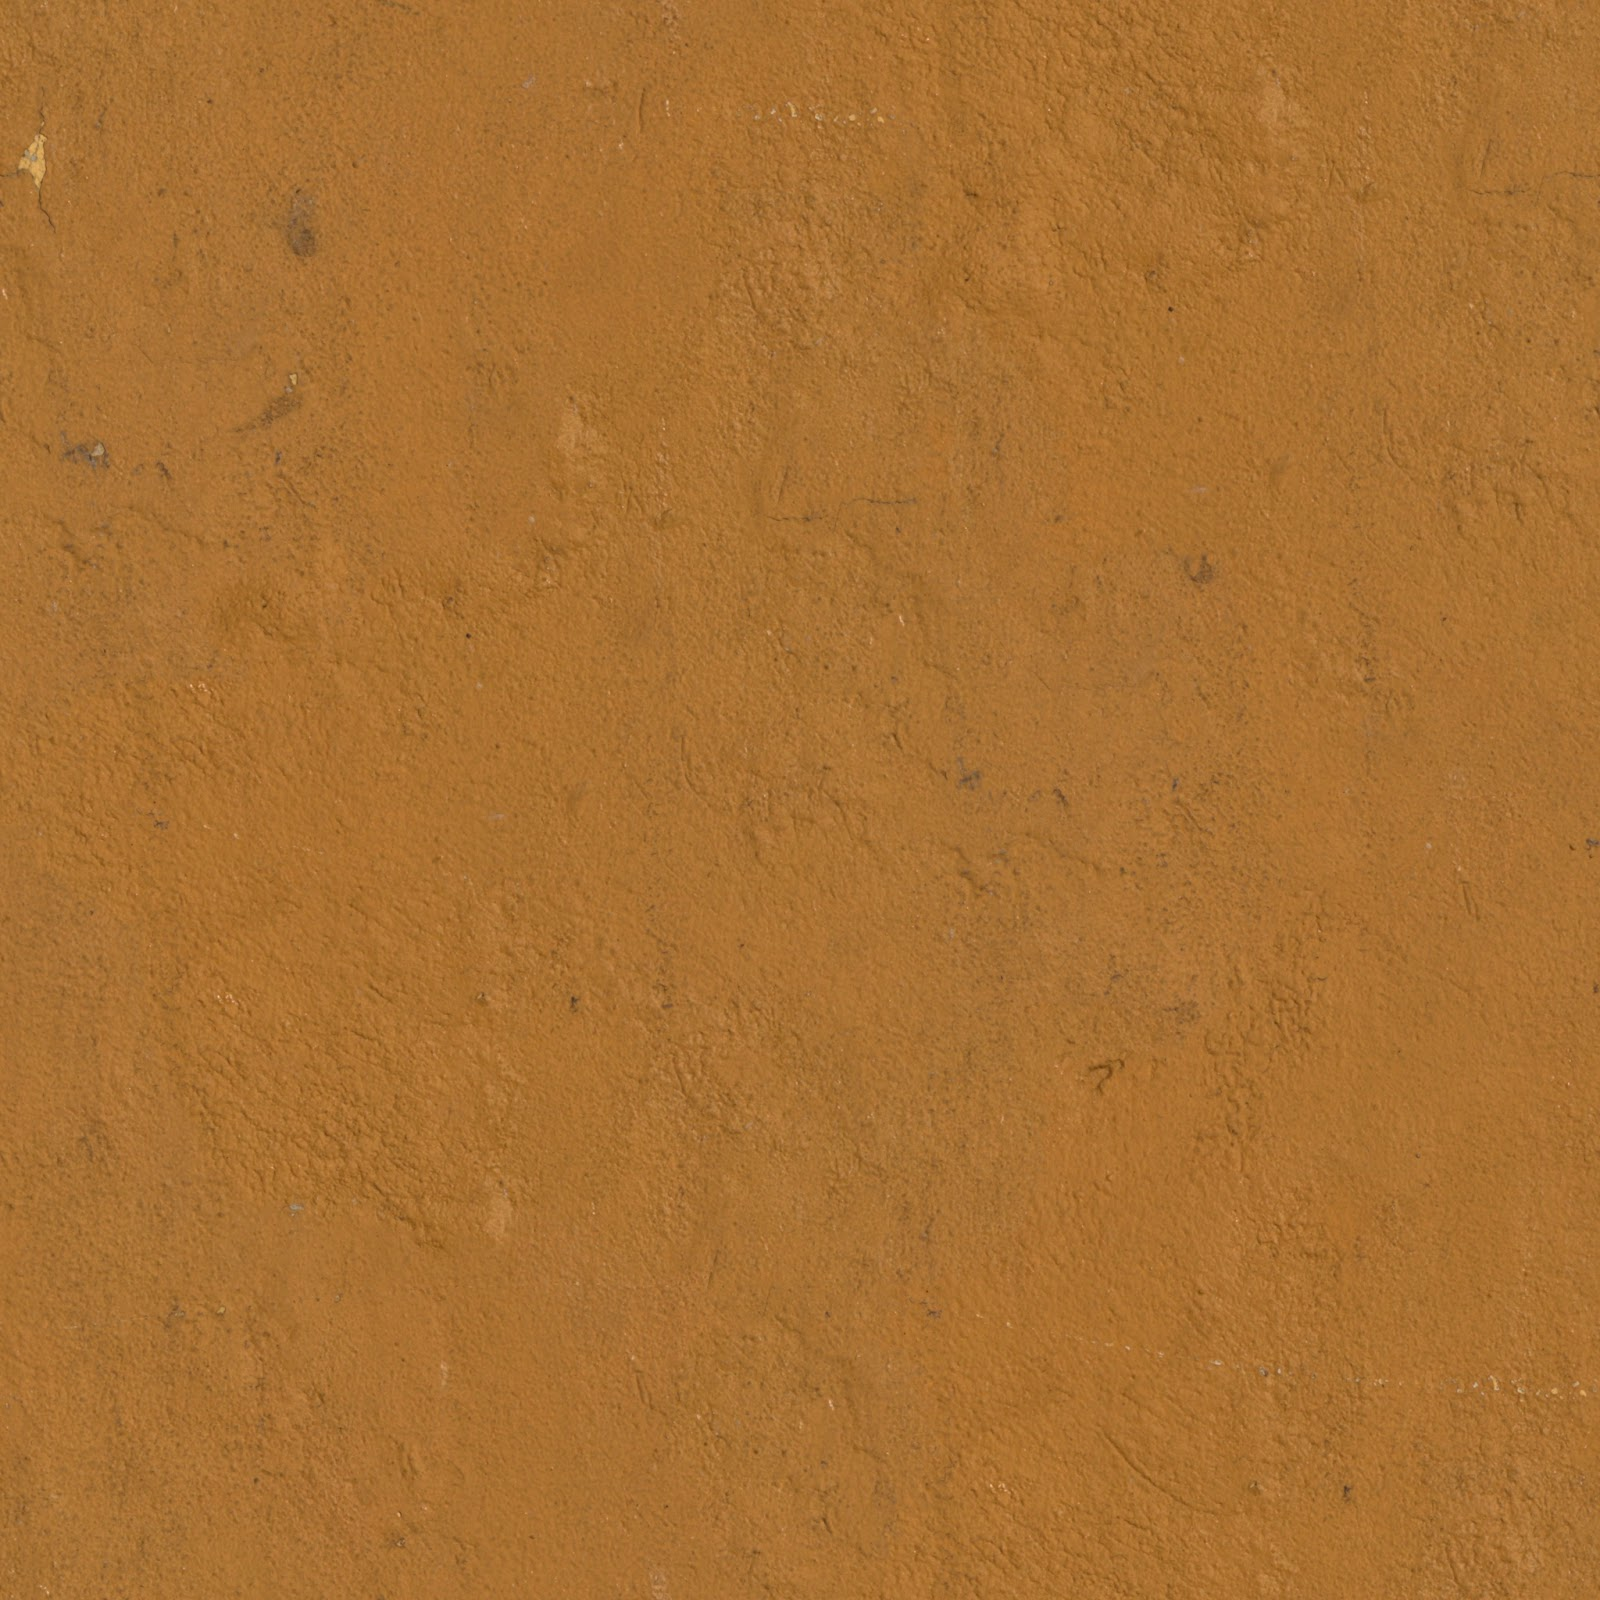 Wall stucco orange dirt seamless texture 2048x2048